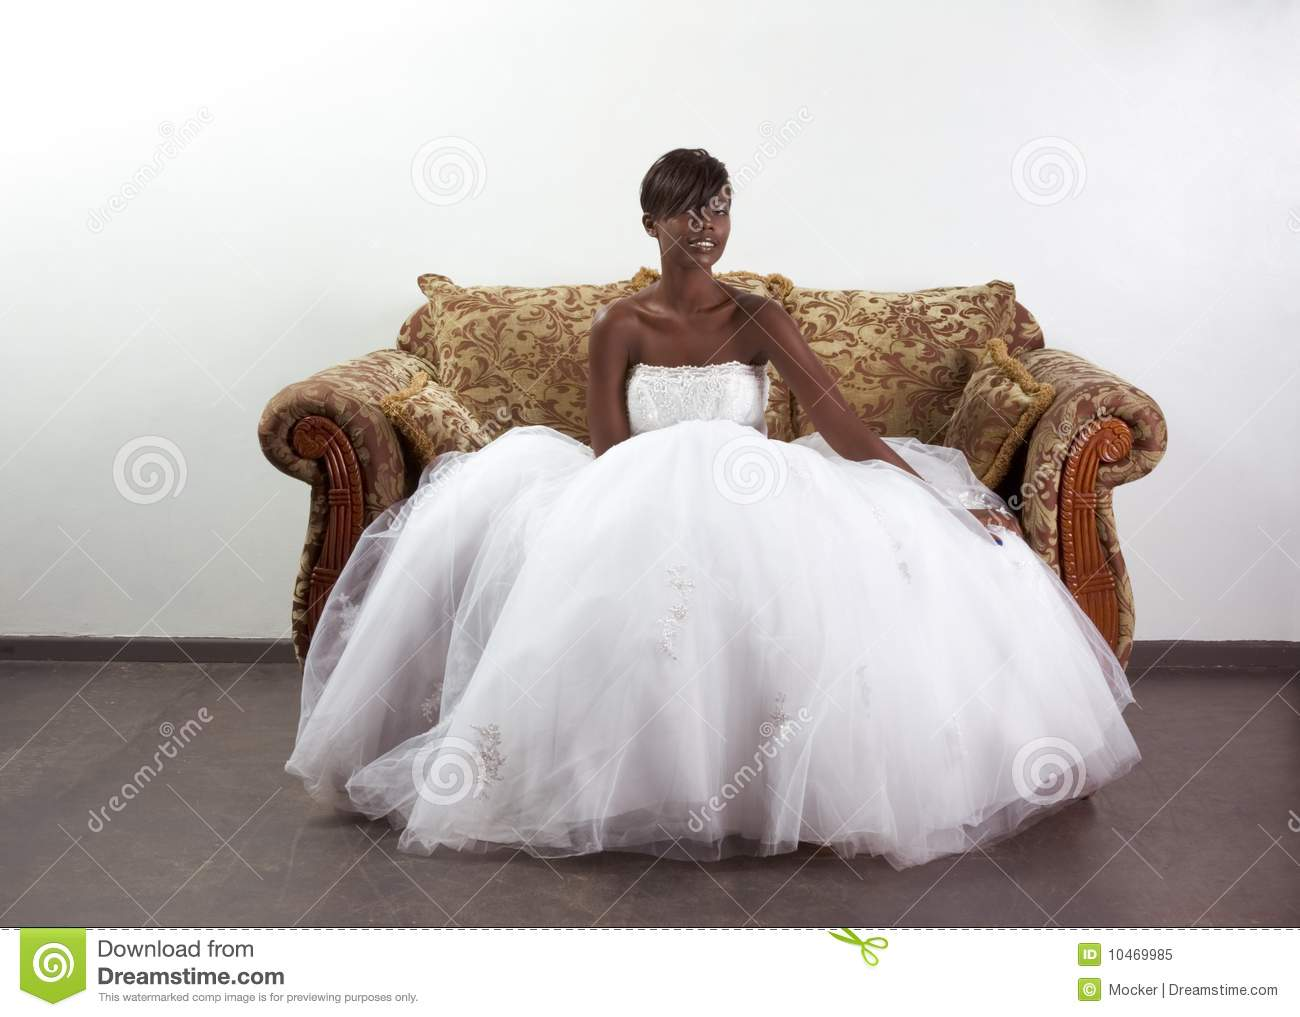 royalty free stock photo young ethnic black woman bride wedding dress image african american wedding dresses Young ethnic black woman bride in wedding dress